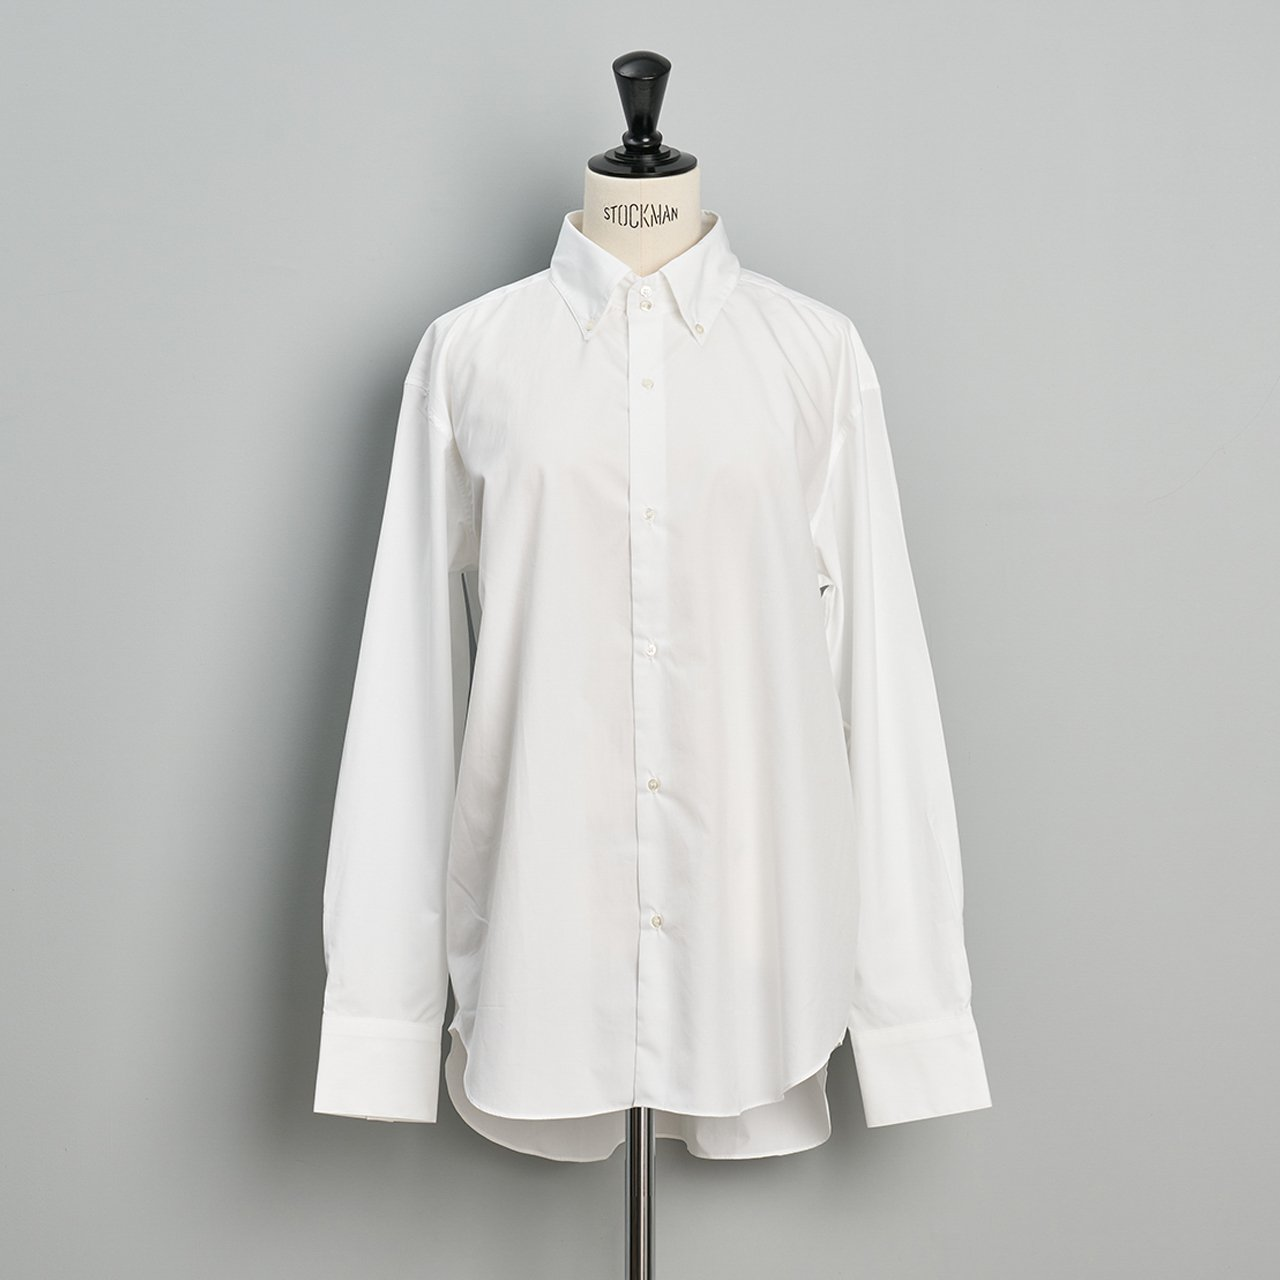 seya.<BR>Kashmir button down shirt<BR>white